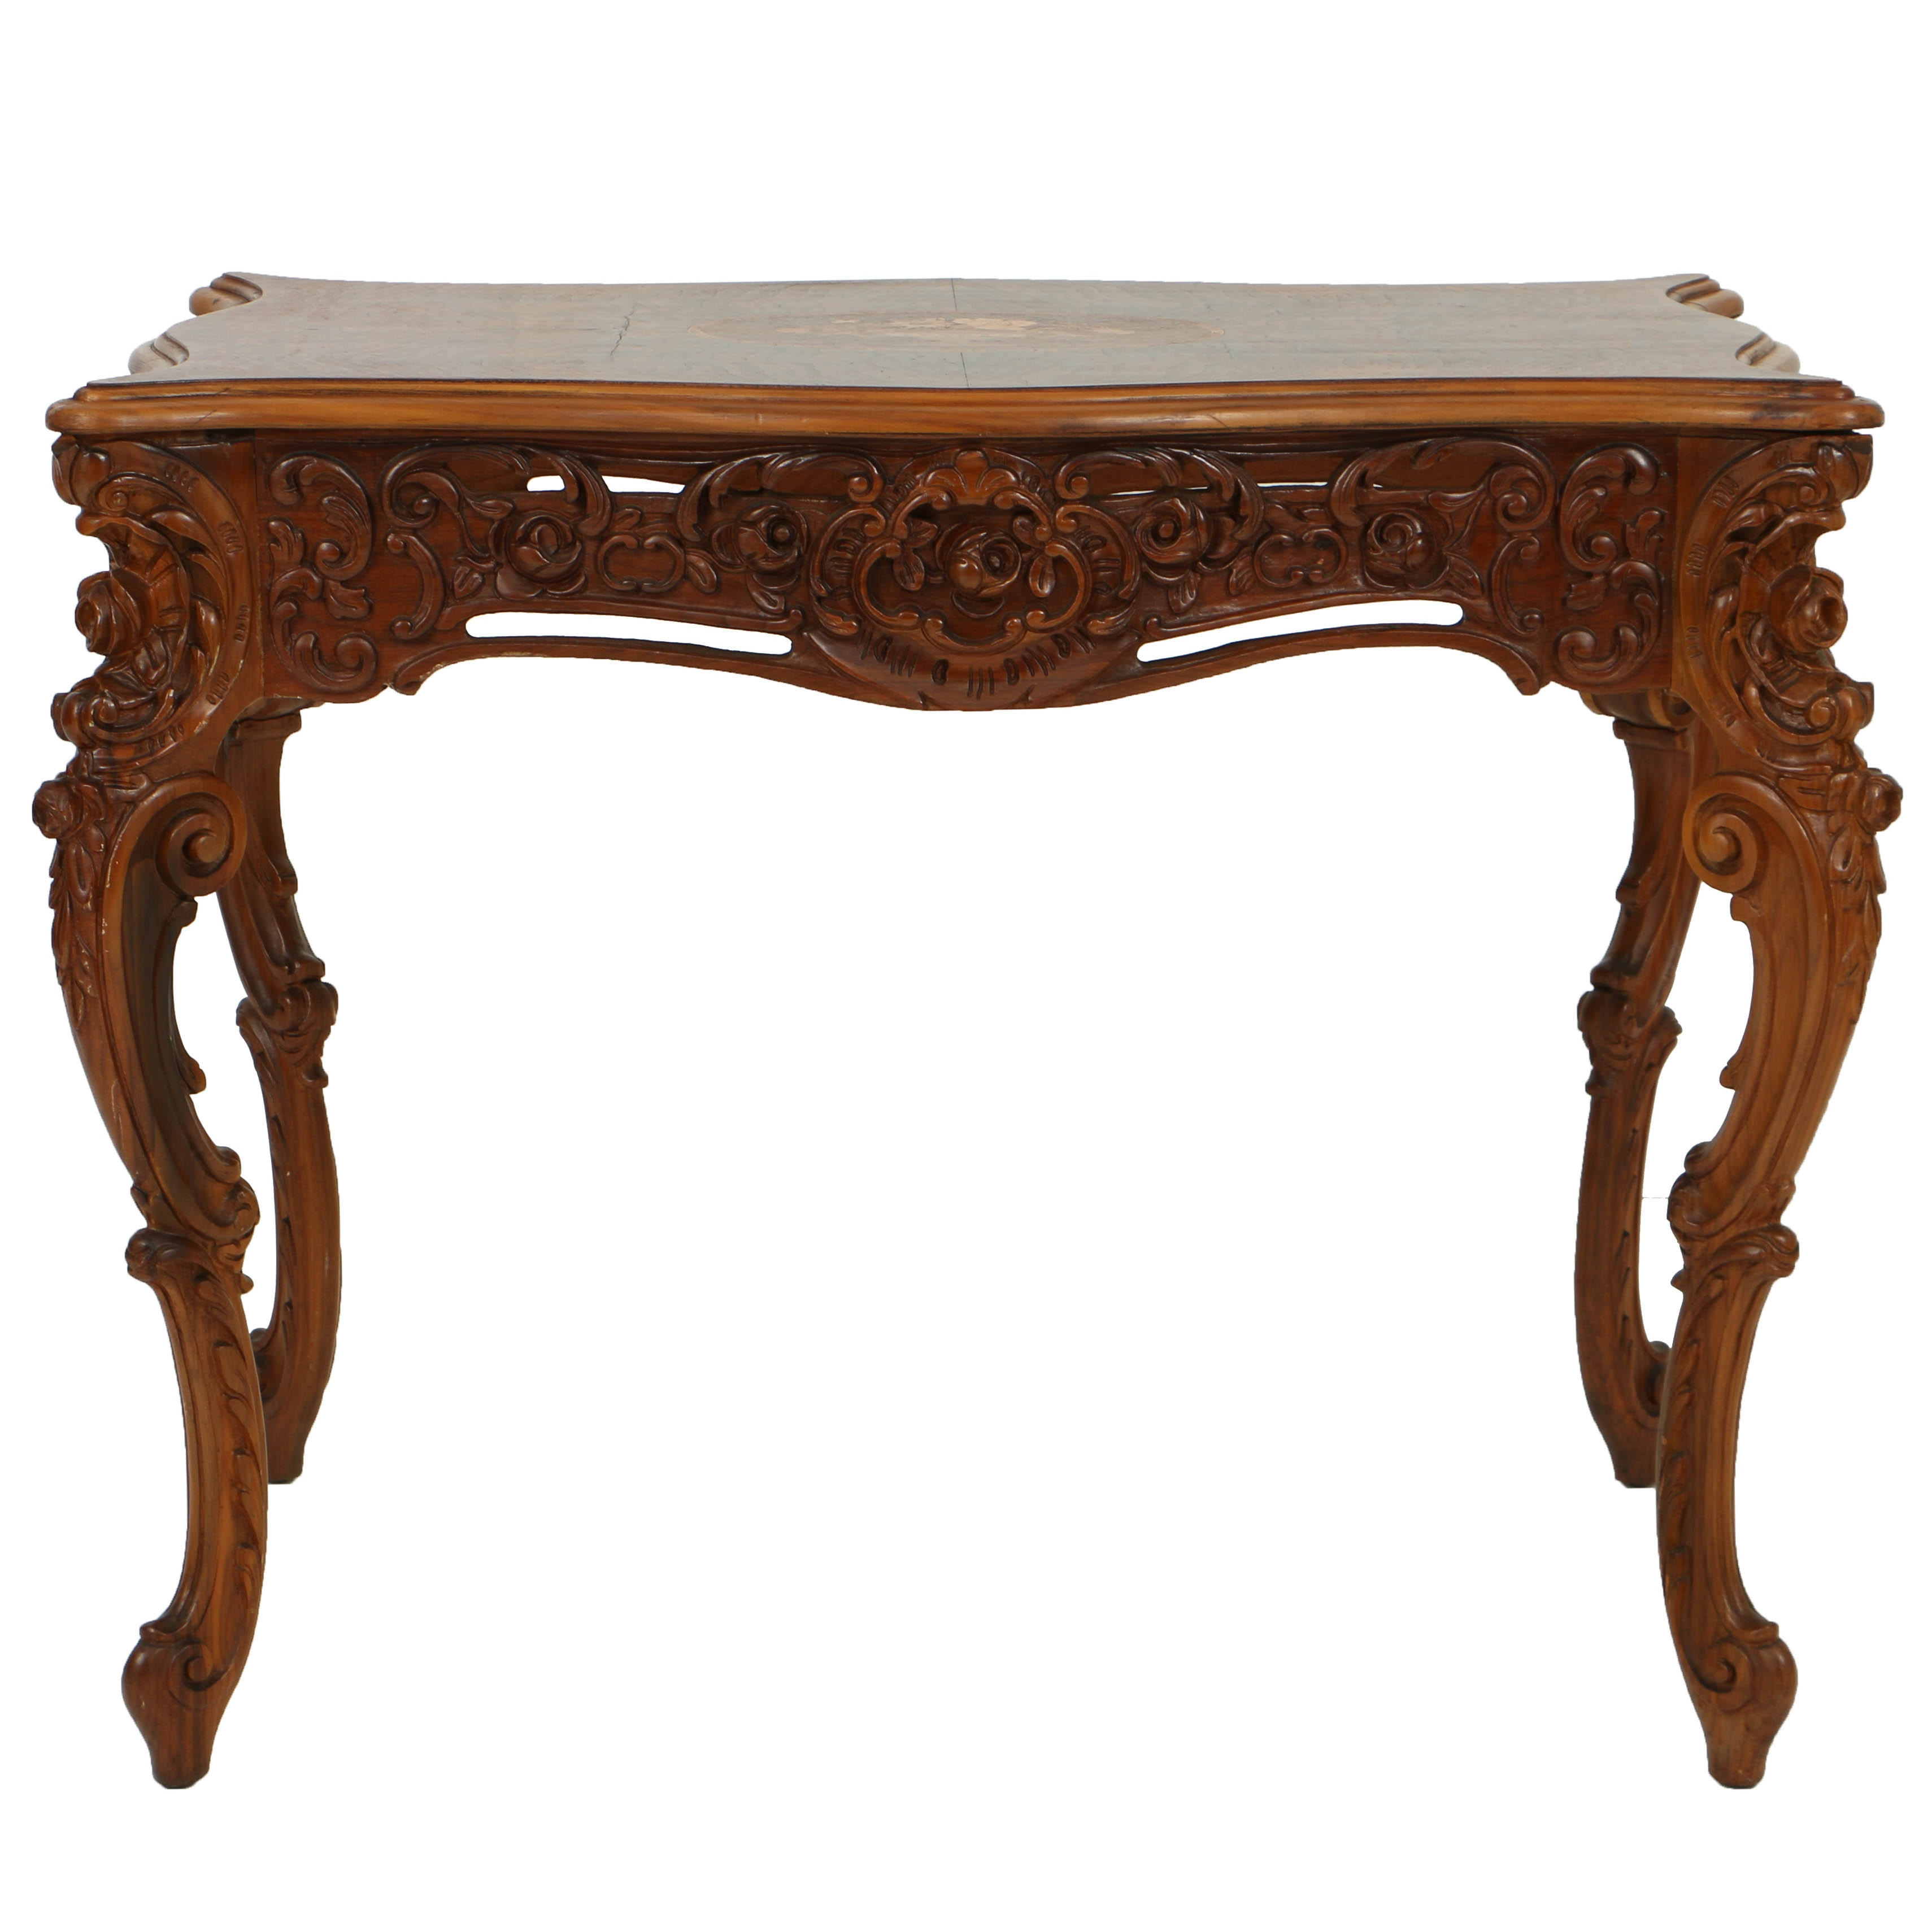 Vintage Rococo Revival Style Marquetry Center Table